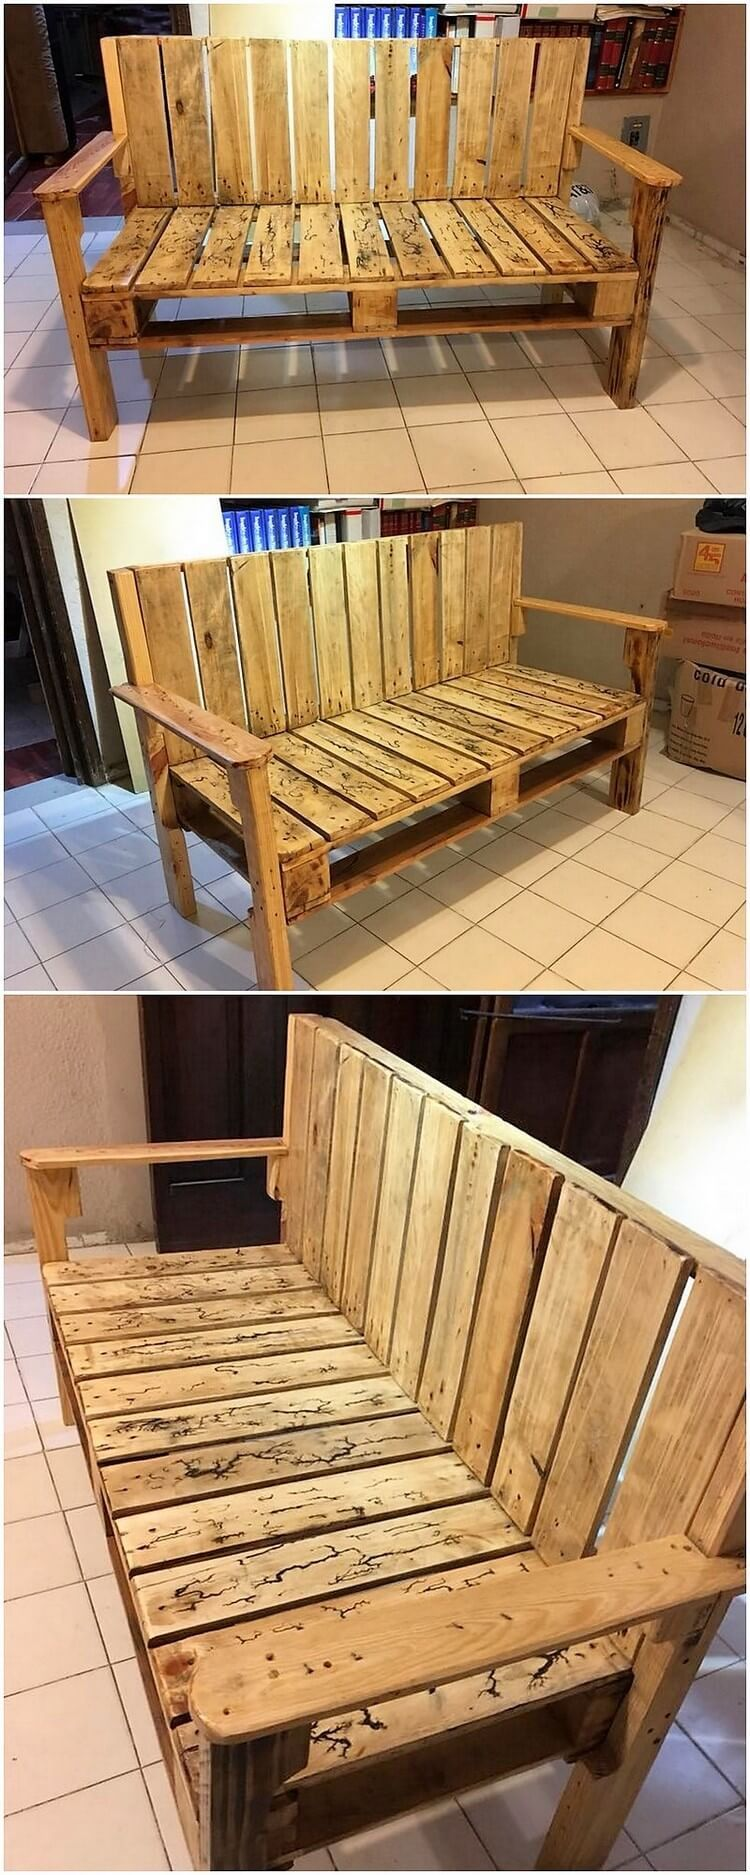 Wood Pallet Bench Diy Pallet Couch Wood Pallet Recycling Wood Pallets